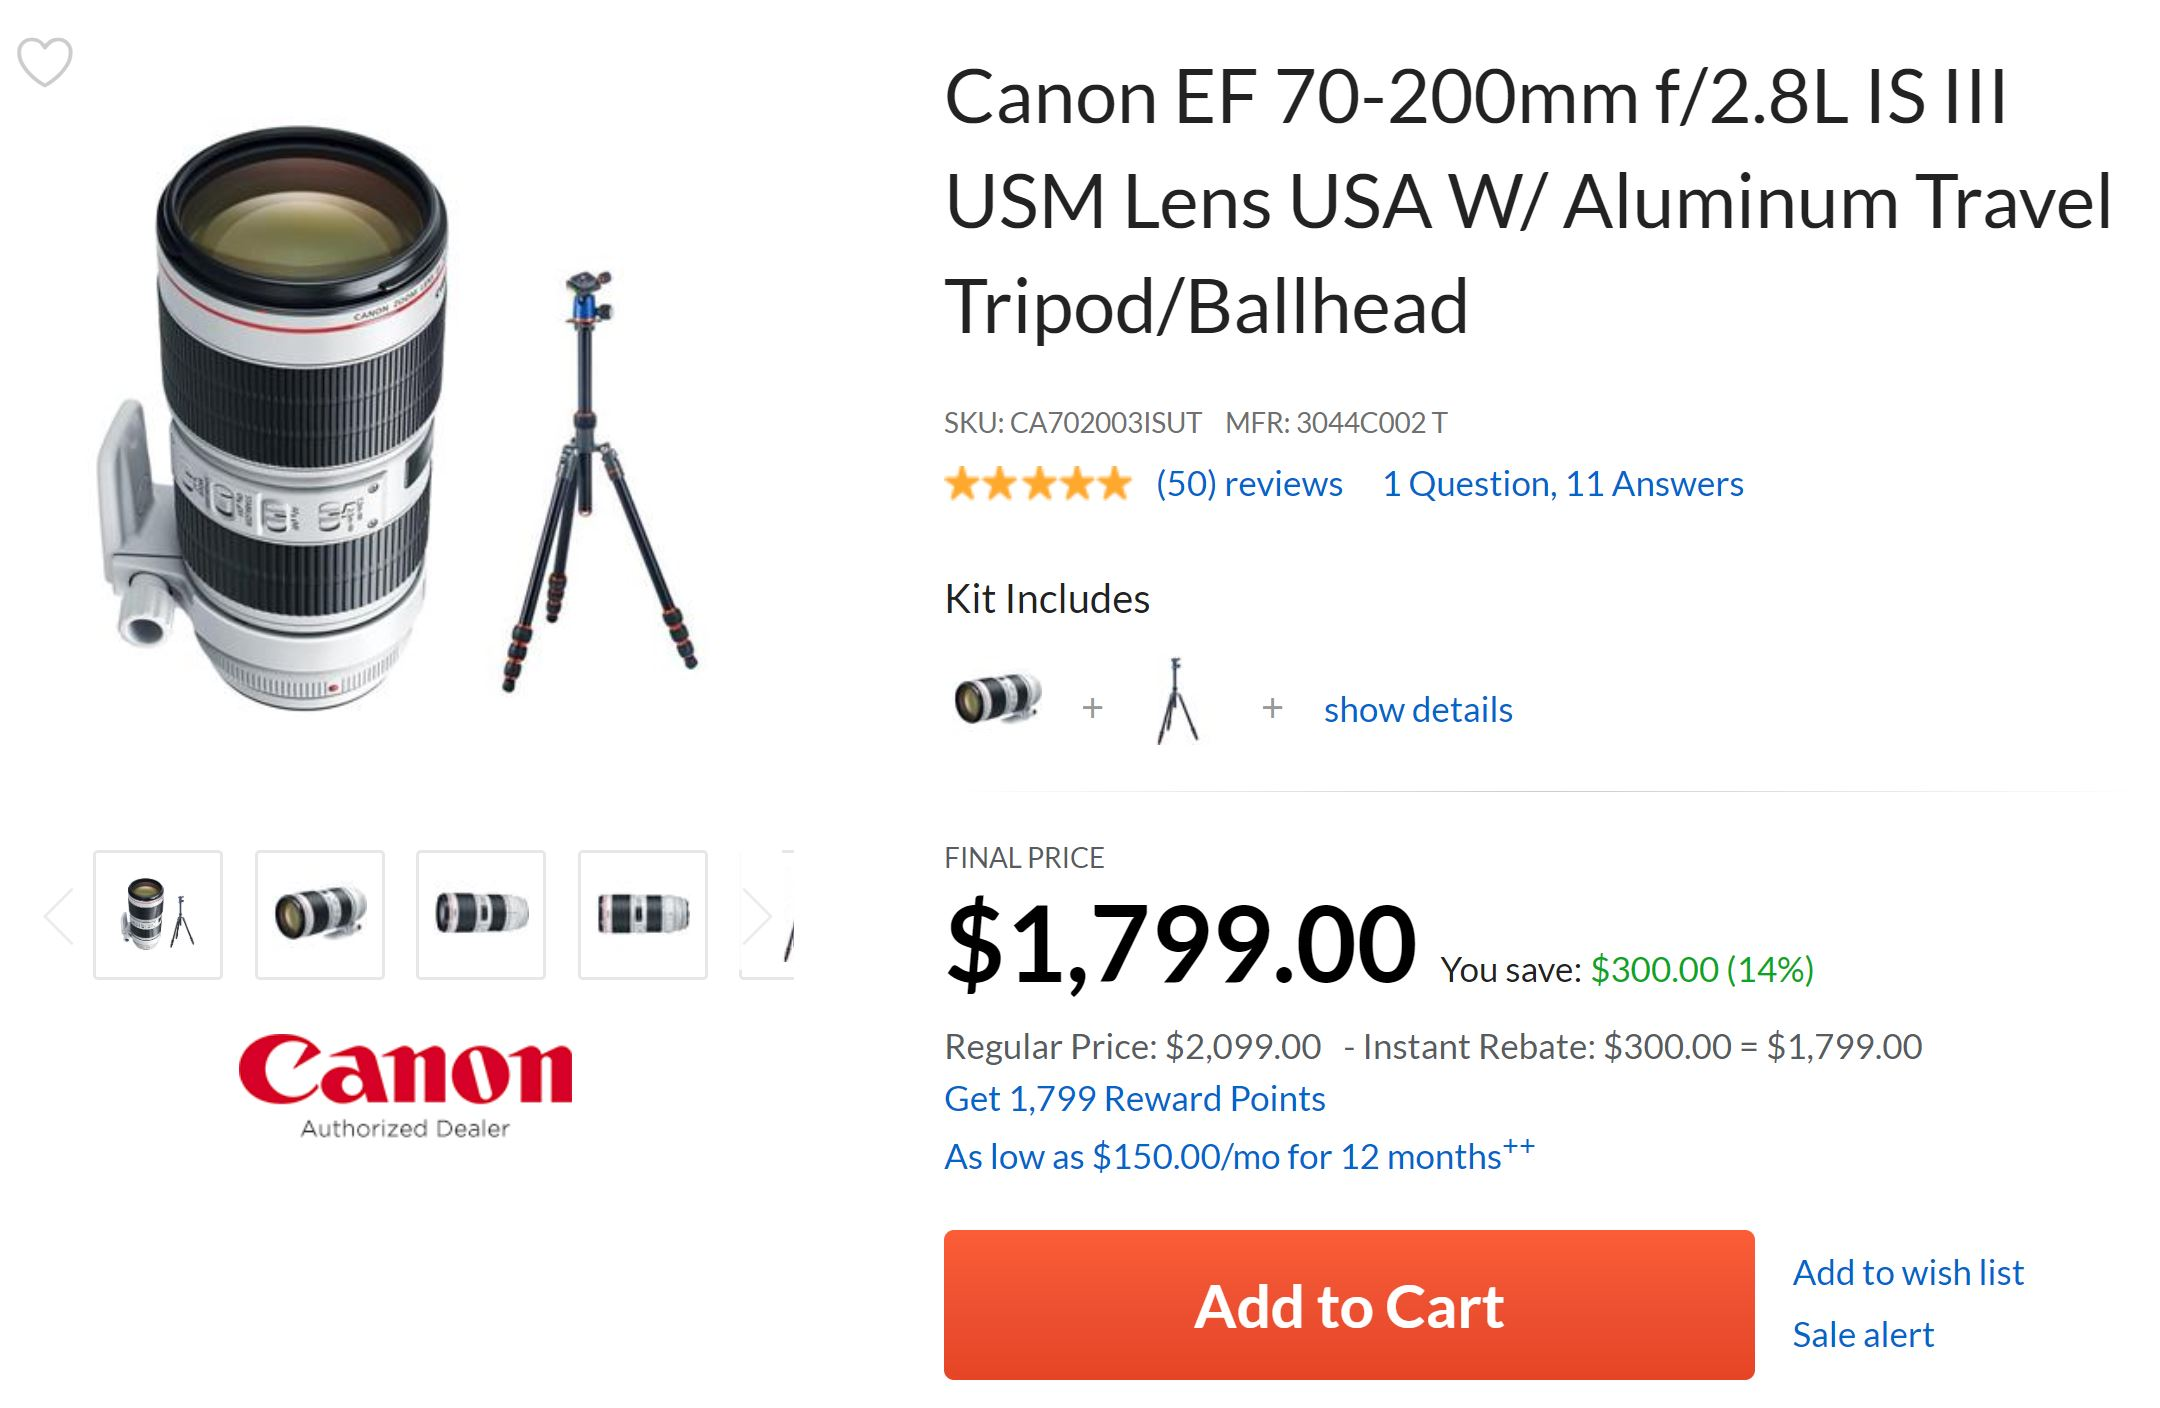 Hot Deal –  EF 70-200mm f/2.8L IS III USM Lens for $1,799 w/ Free Aluminum Travel Tripod/Ballhead !